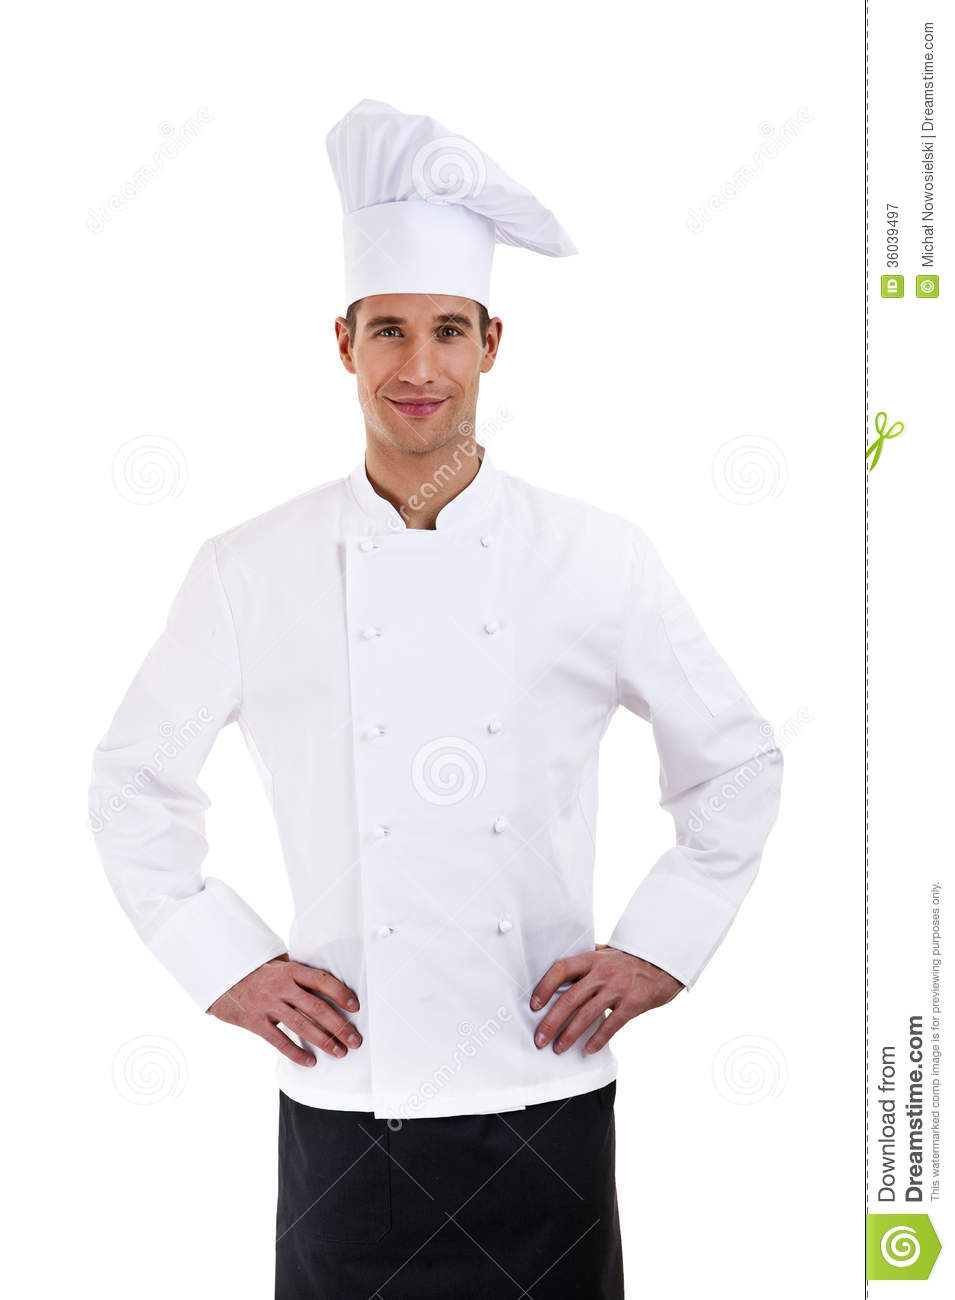 Male Chef Cook Royalty Free Stock Photography - Image: 36039497